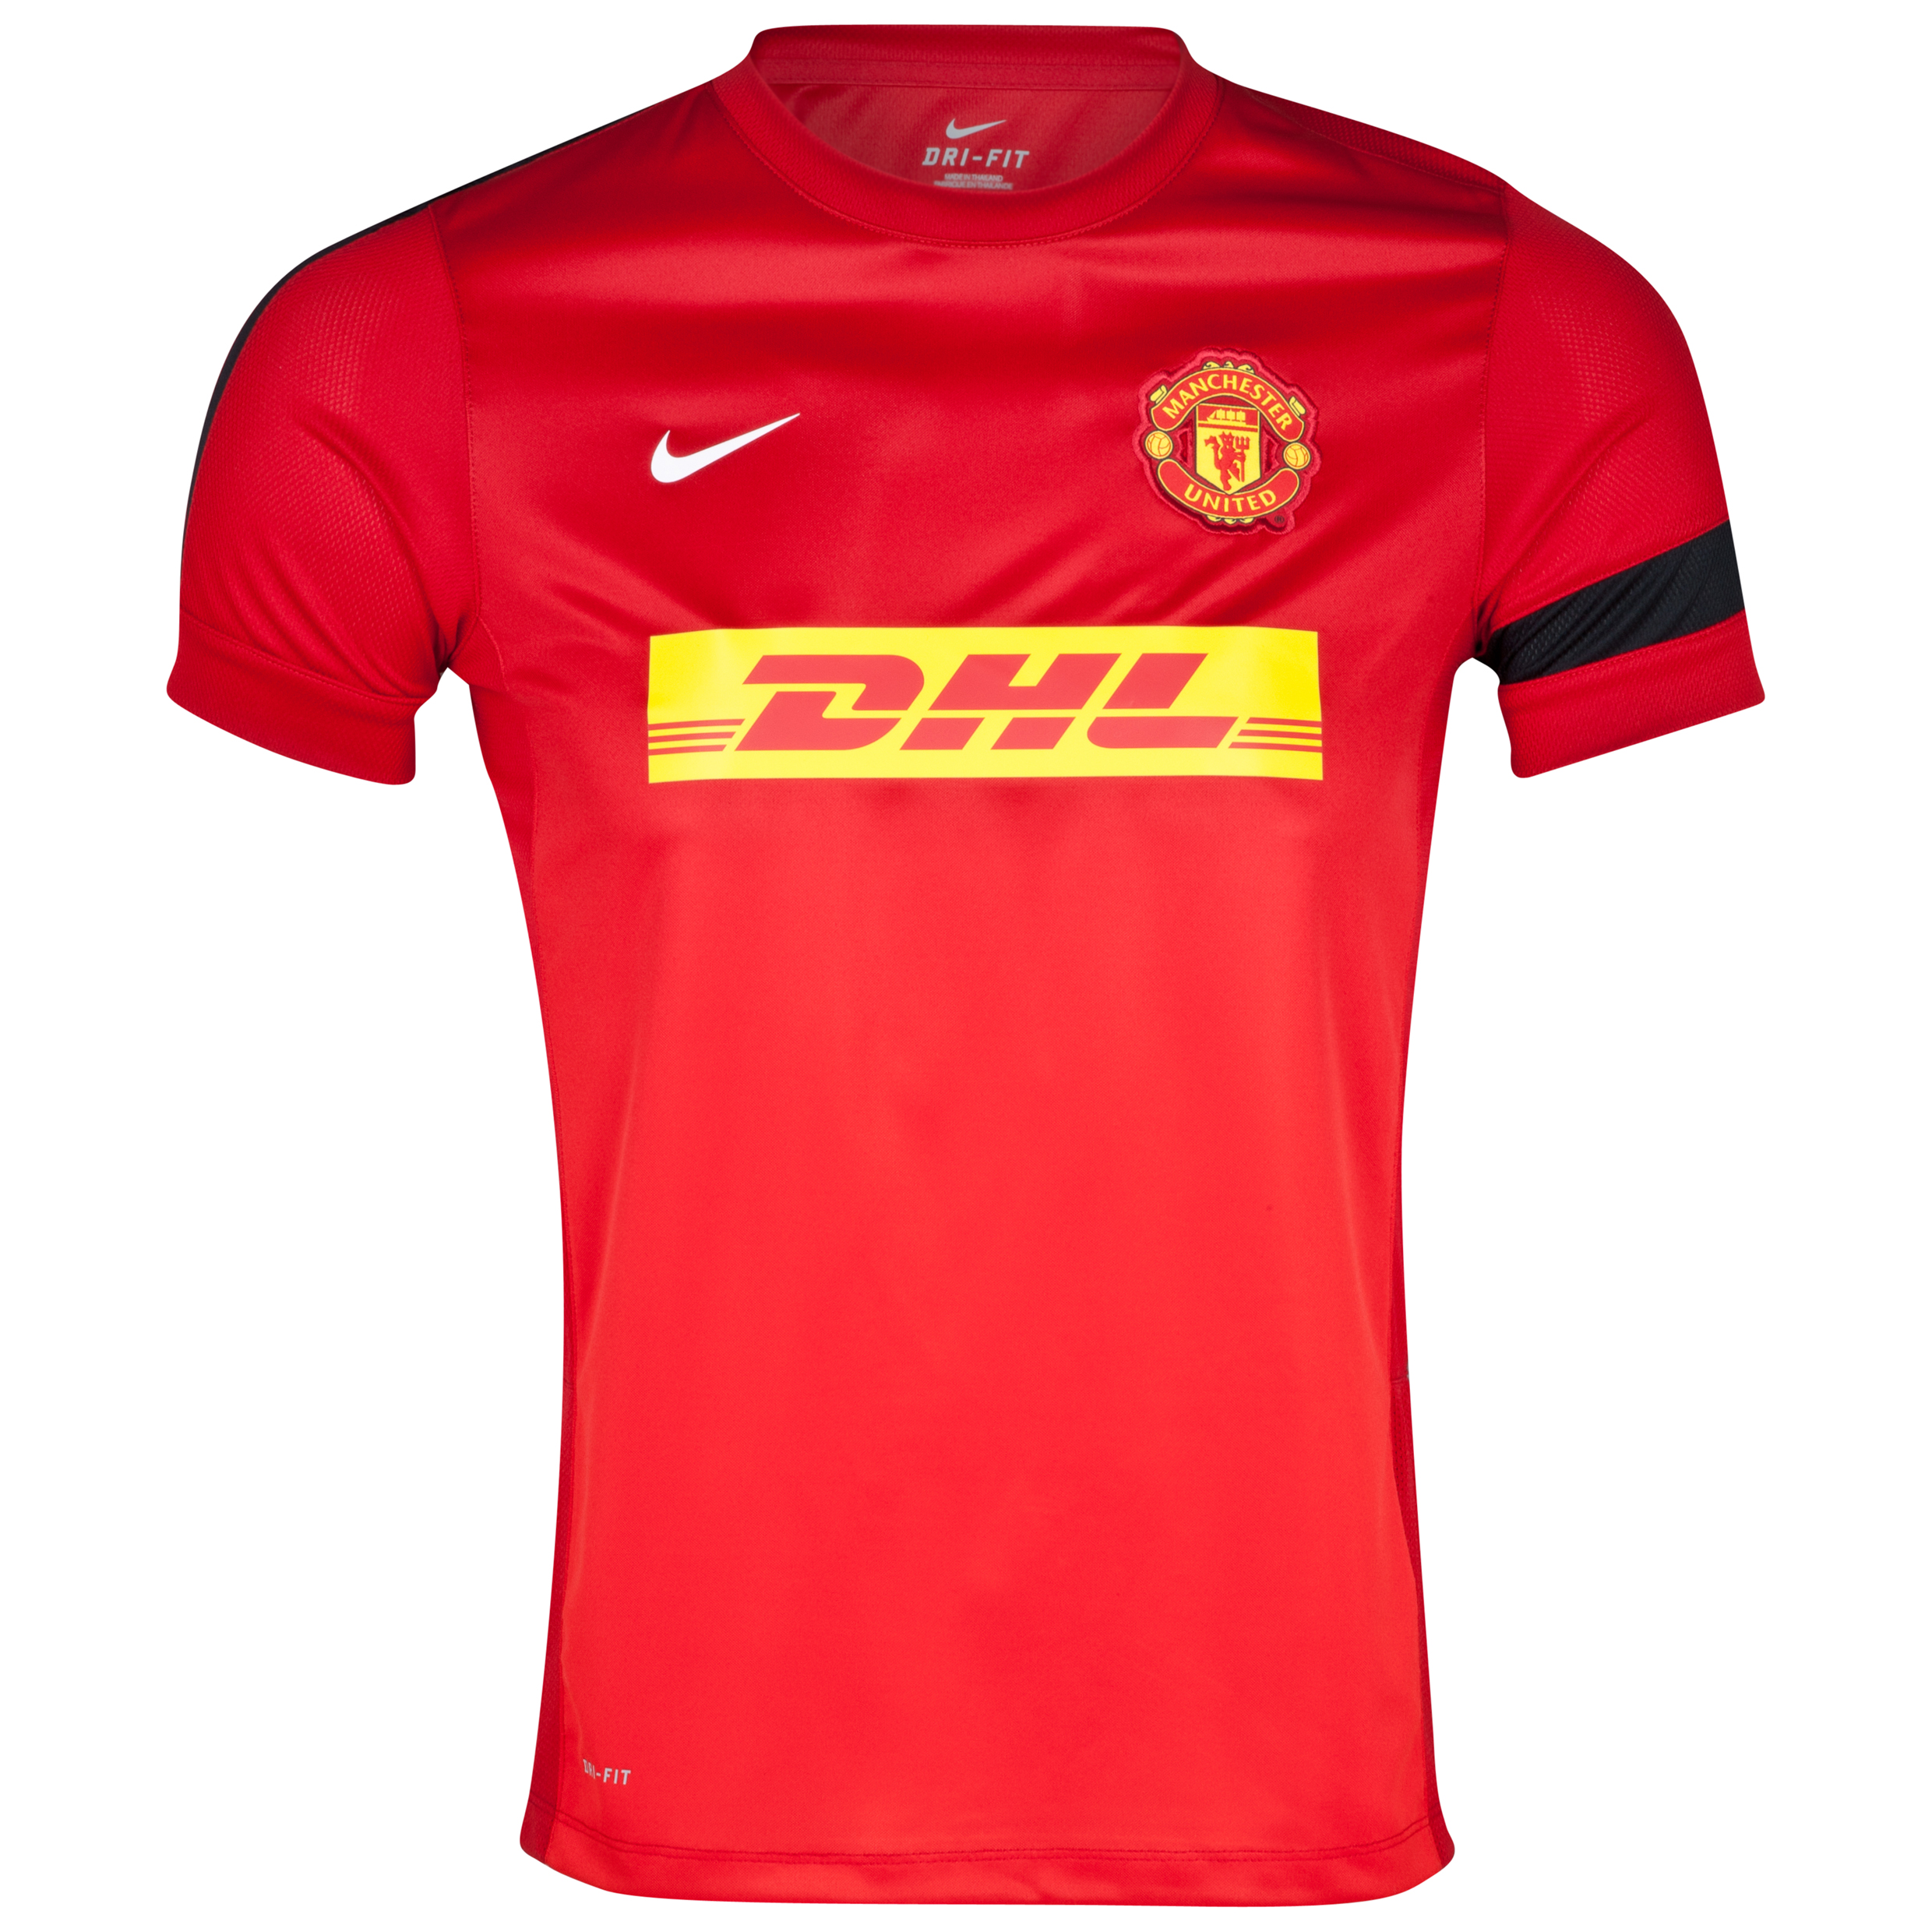 Manchester United Training Top III - Gym Red/Black/White - Youths